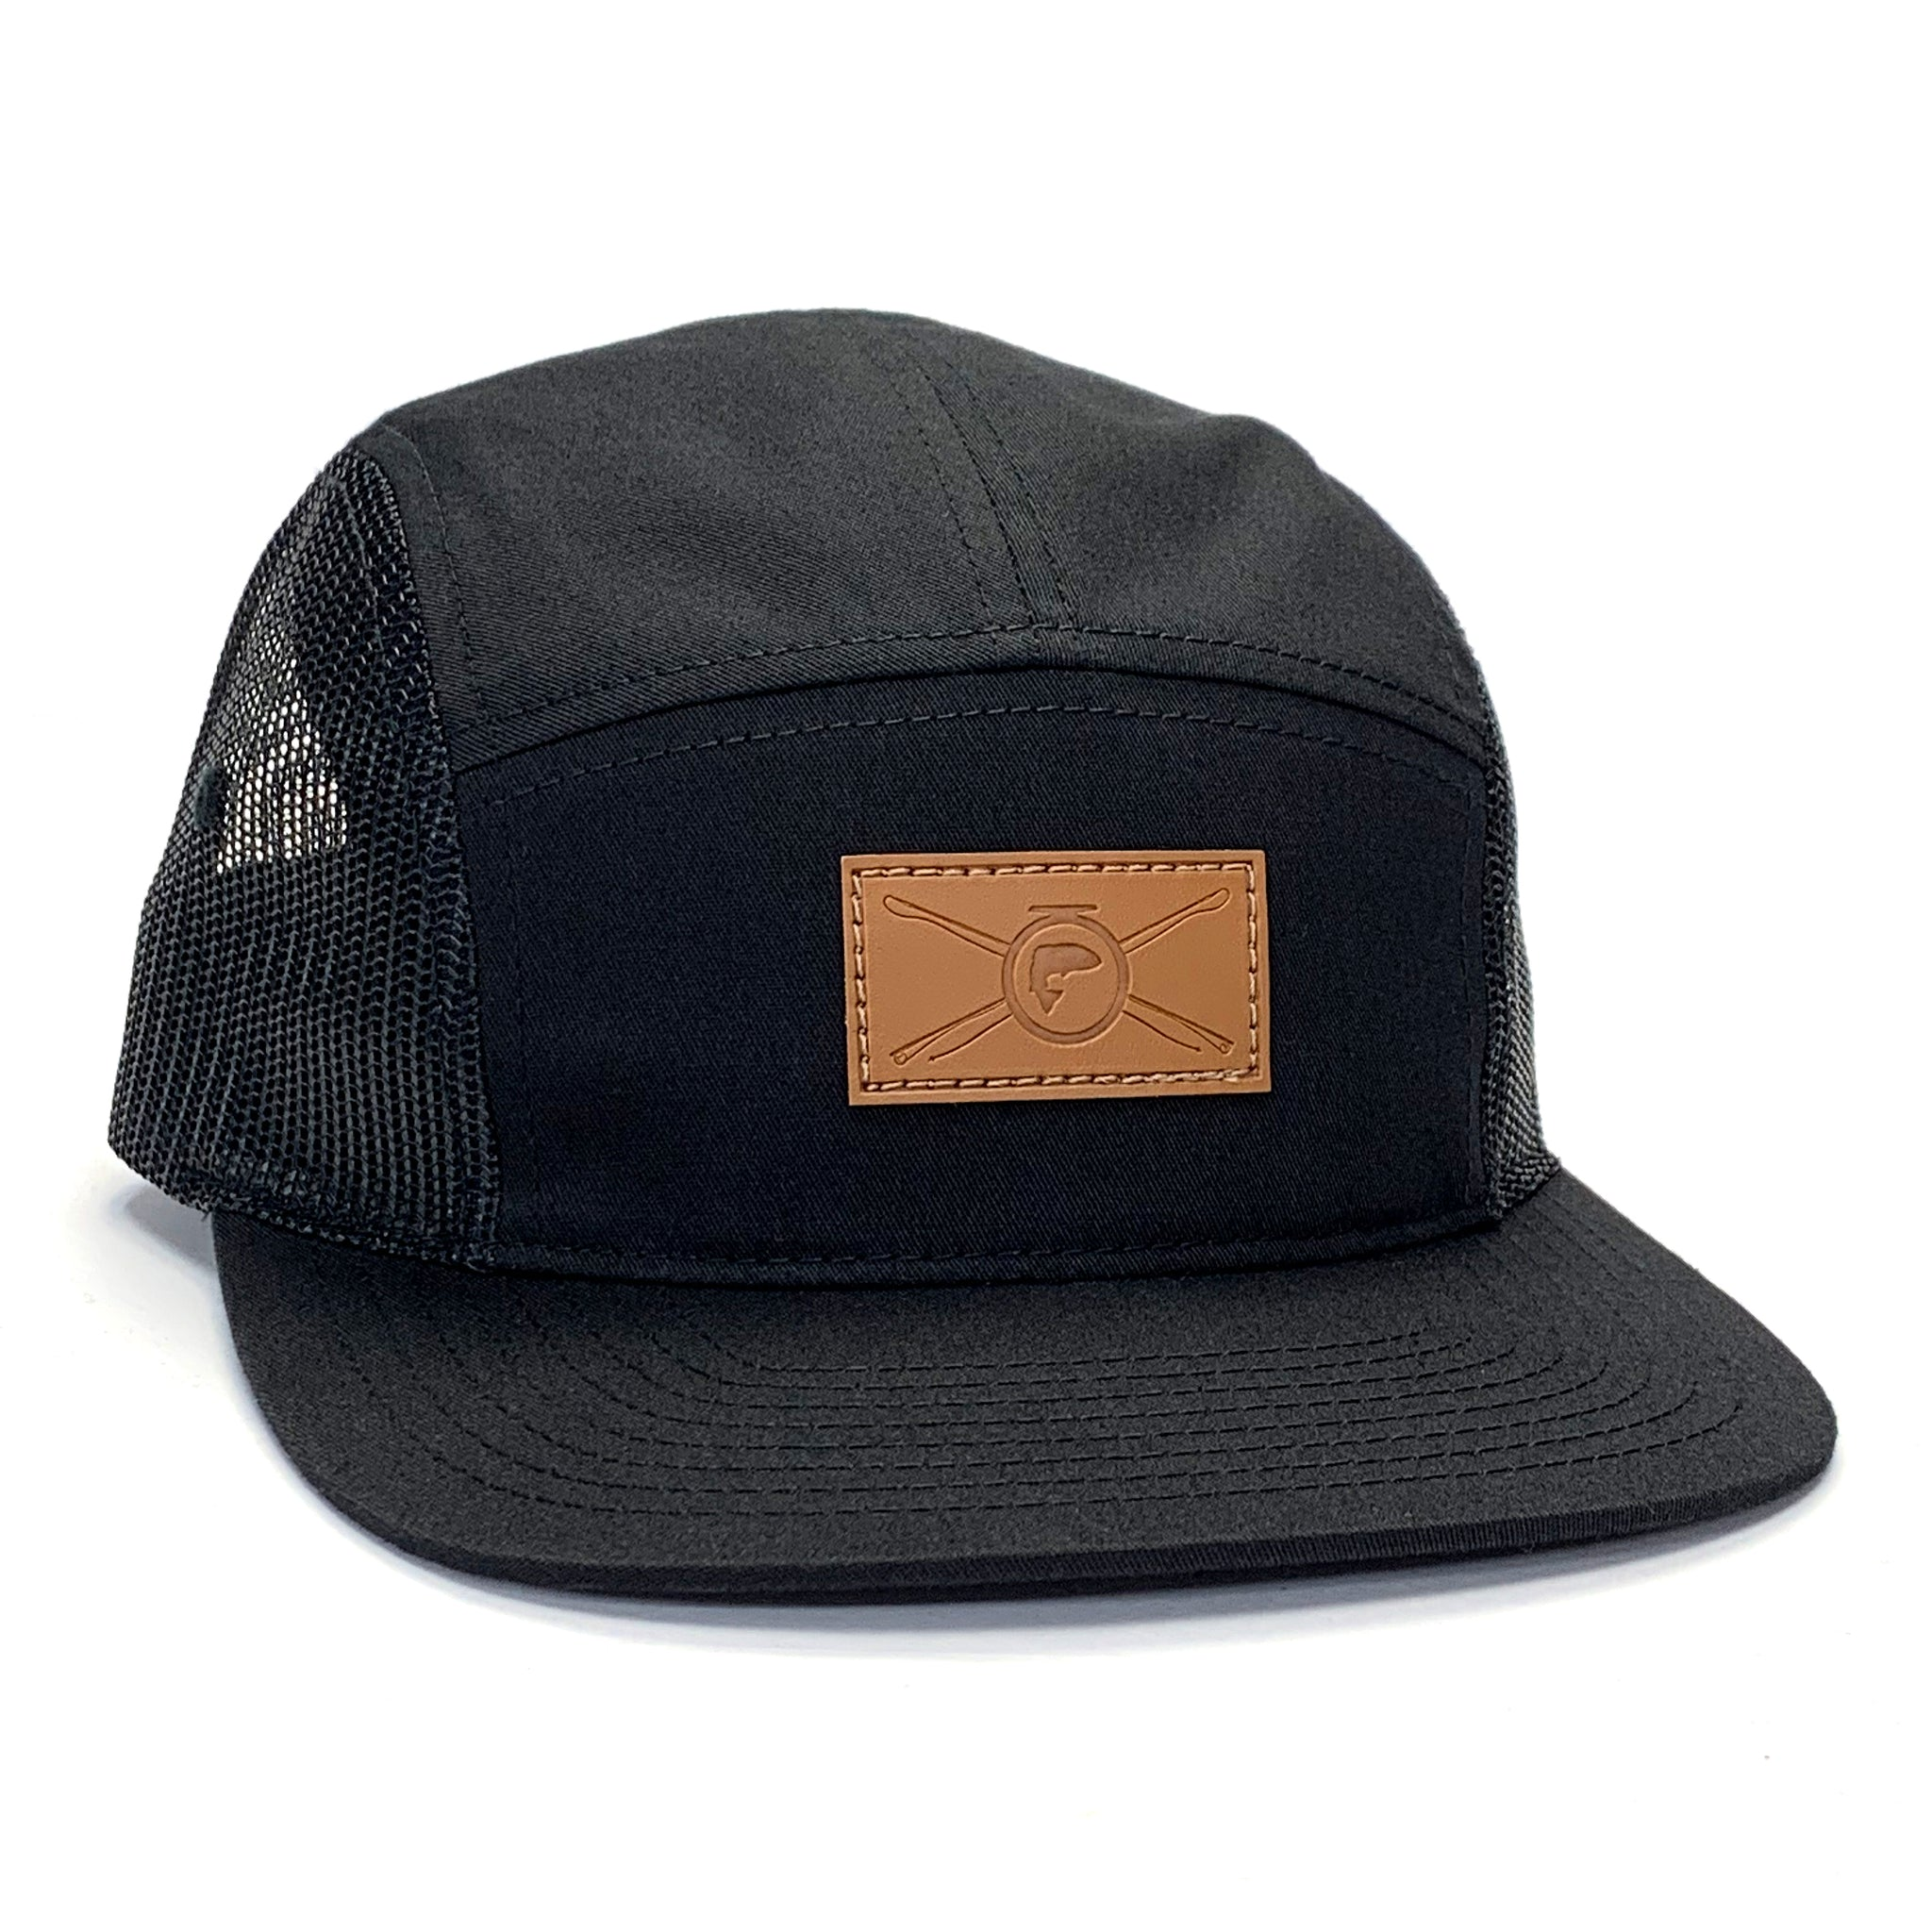 The Camp Hat - Rods & Roll Patch